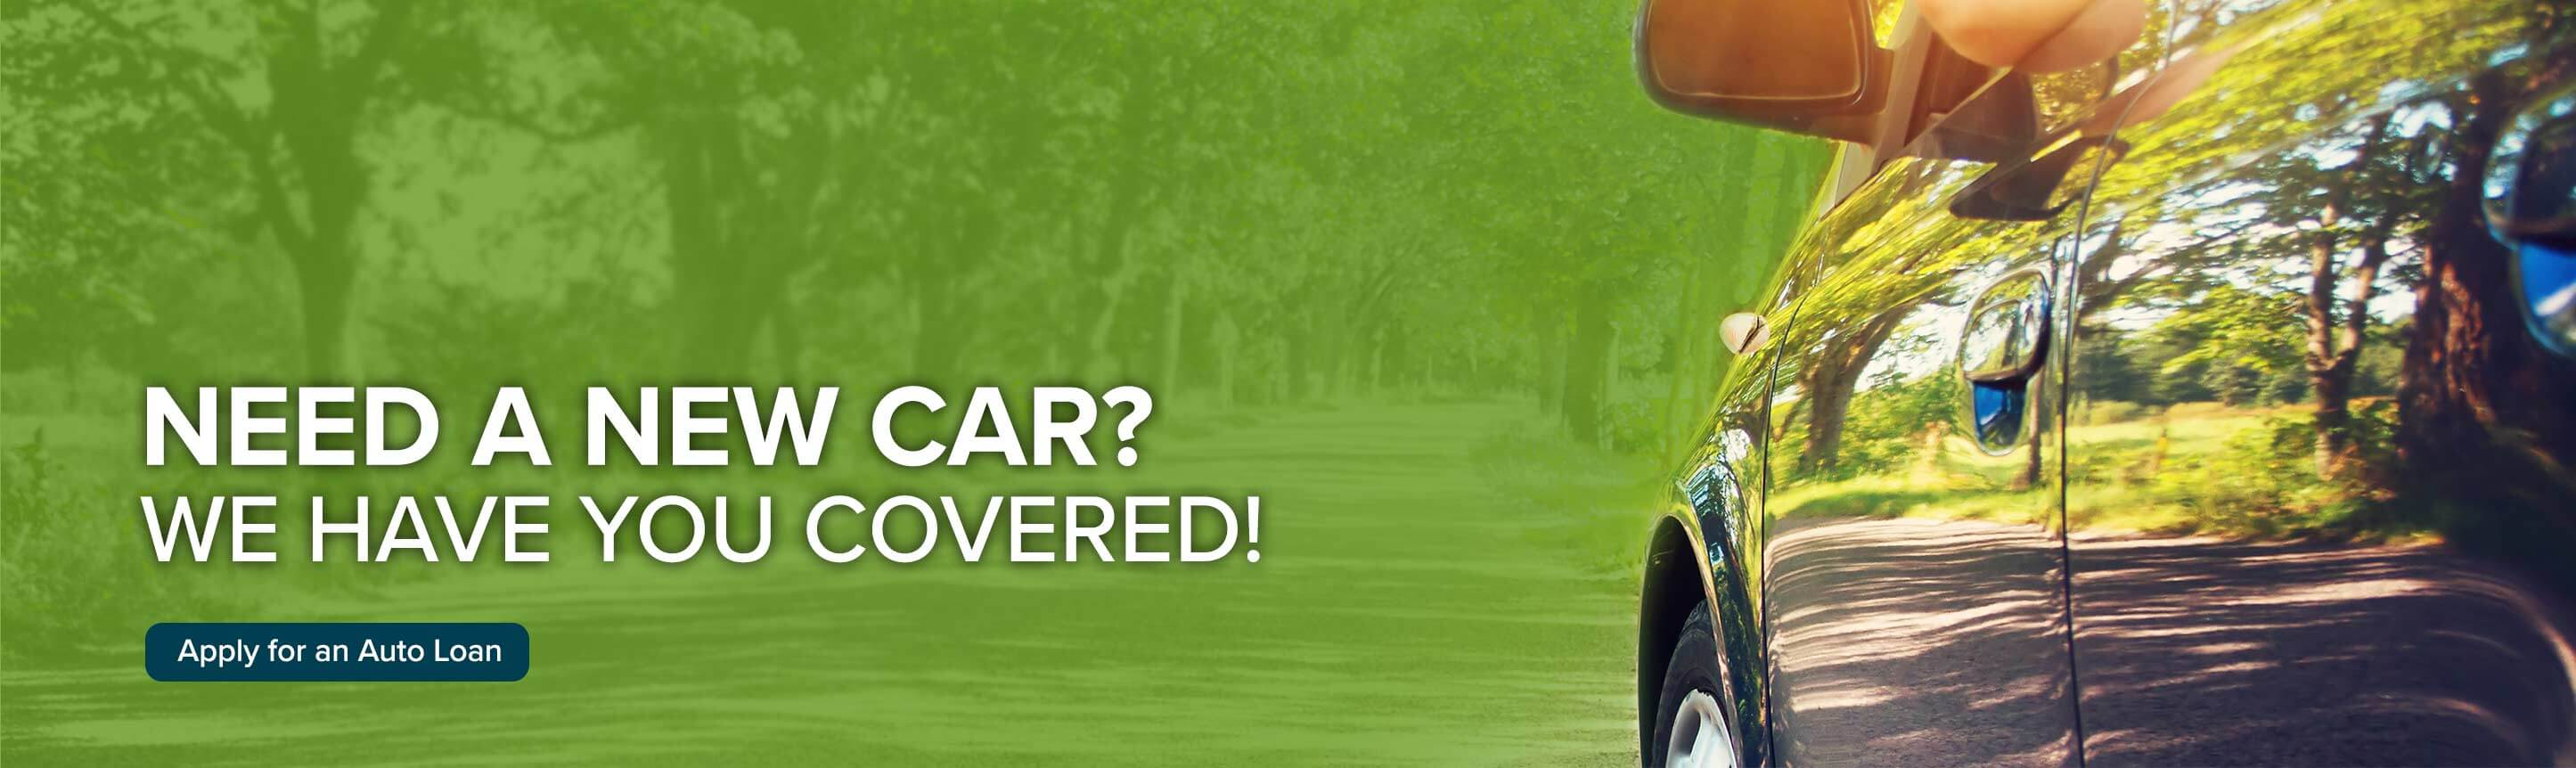 Need a new car? We have you covered! Apply for an auto loan.